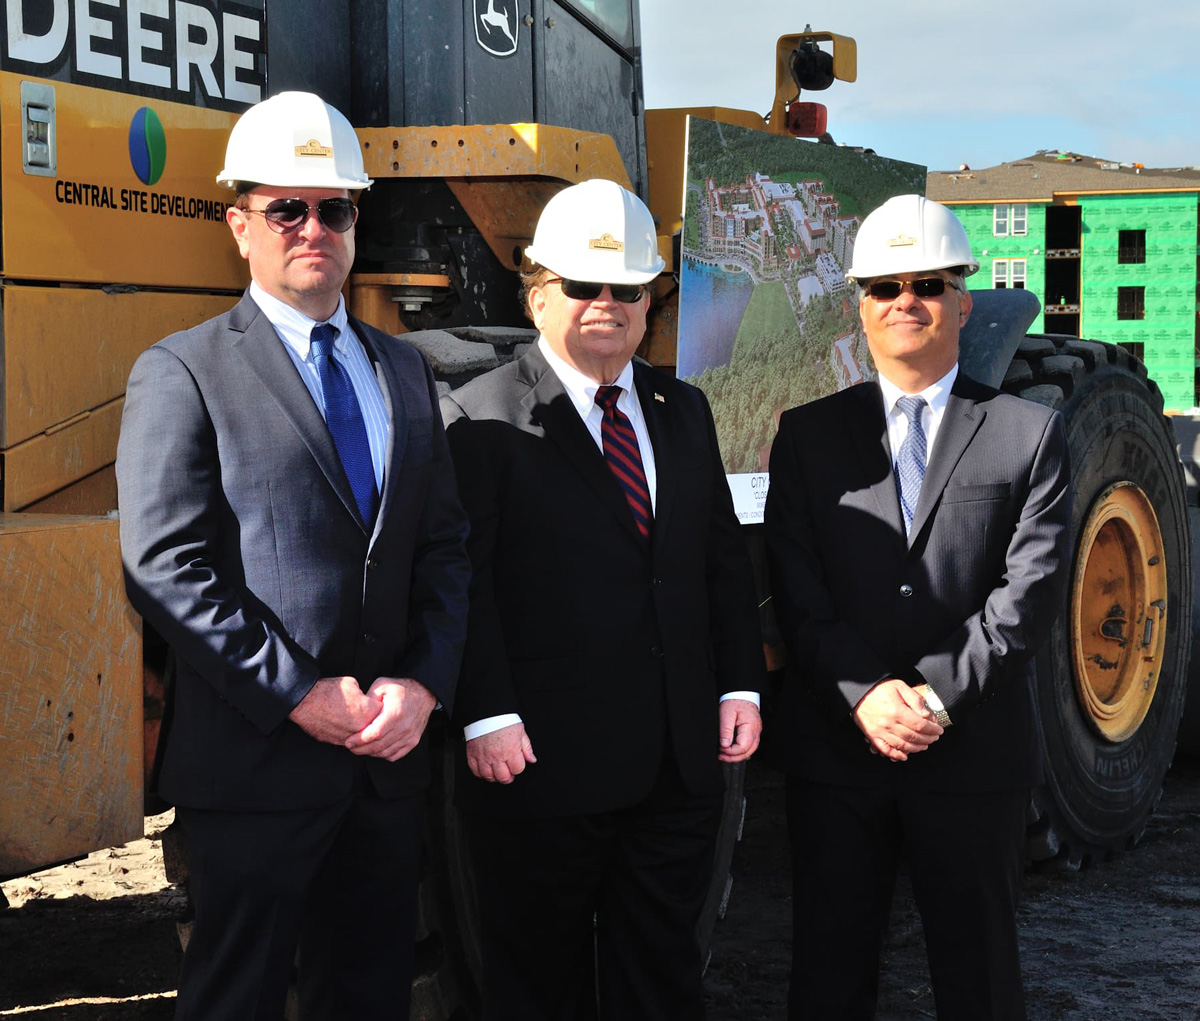 Picture of executive team with a bulldozer.